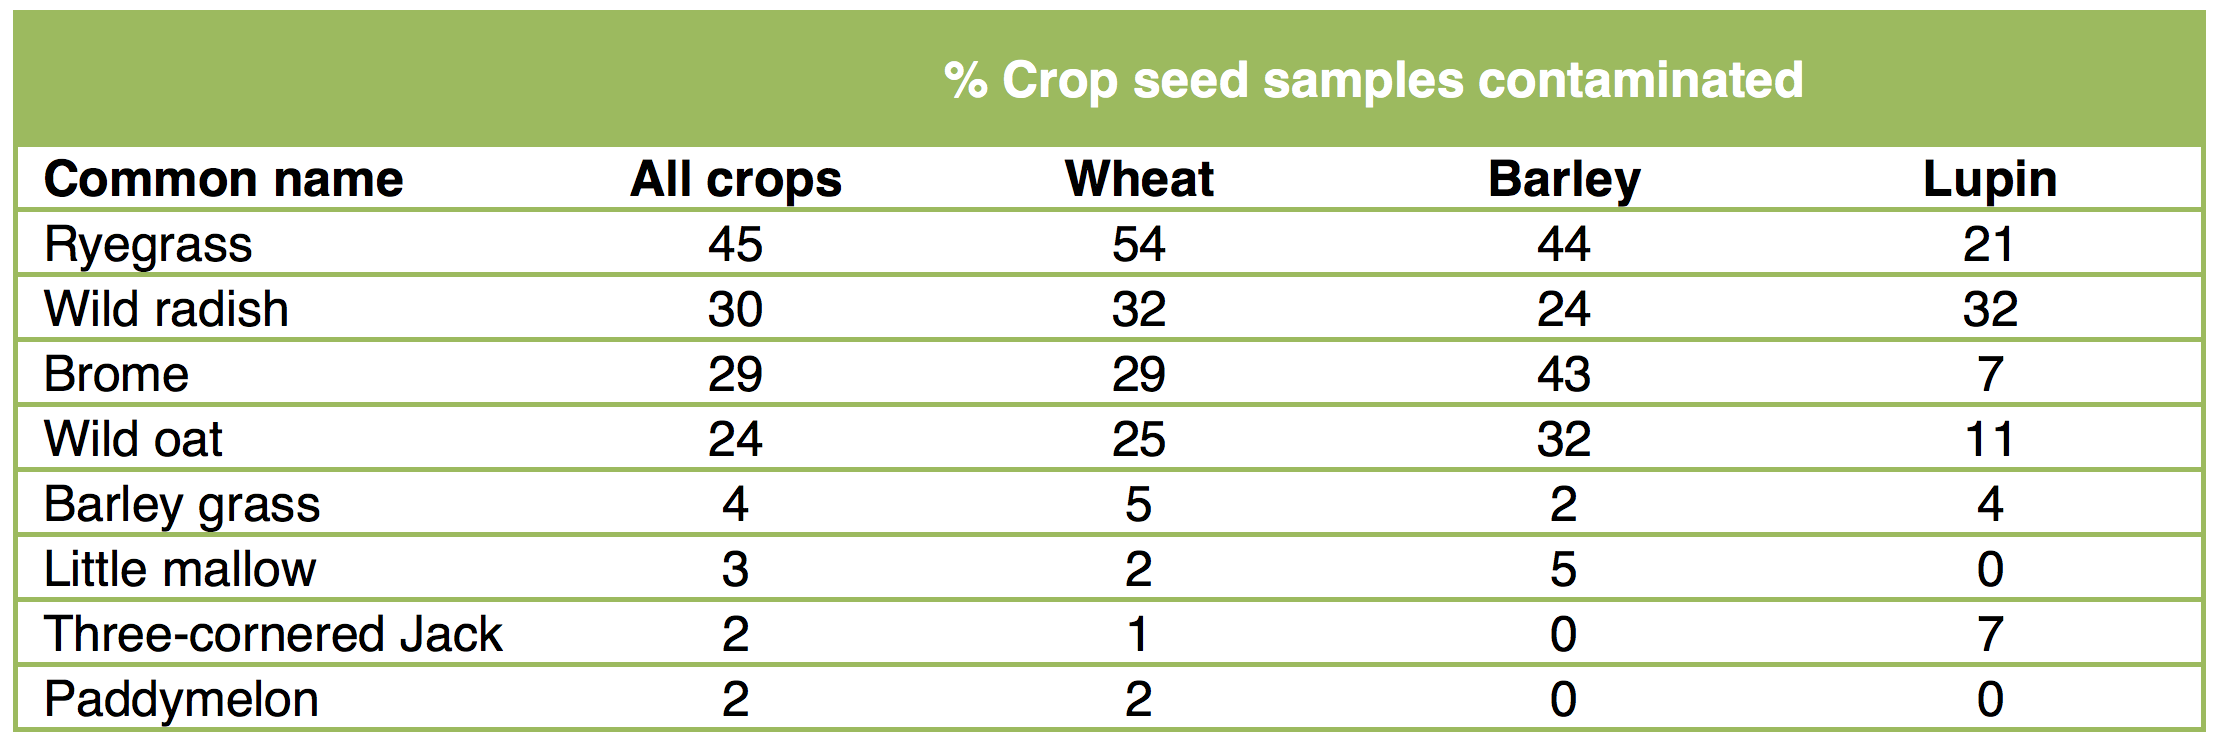 % crop seed samples contaminated